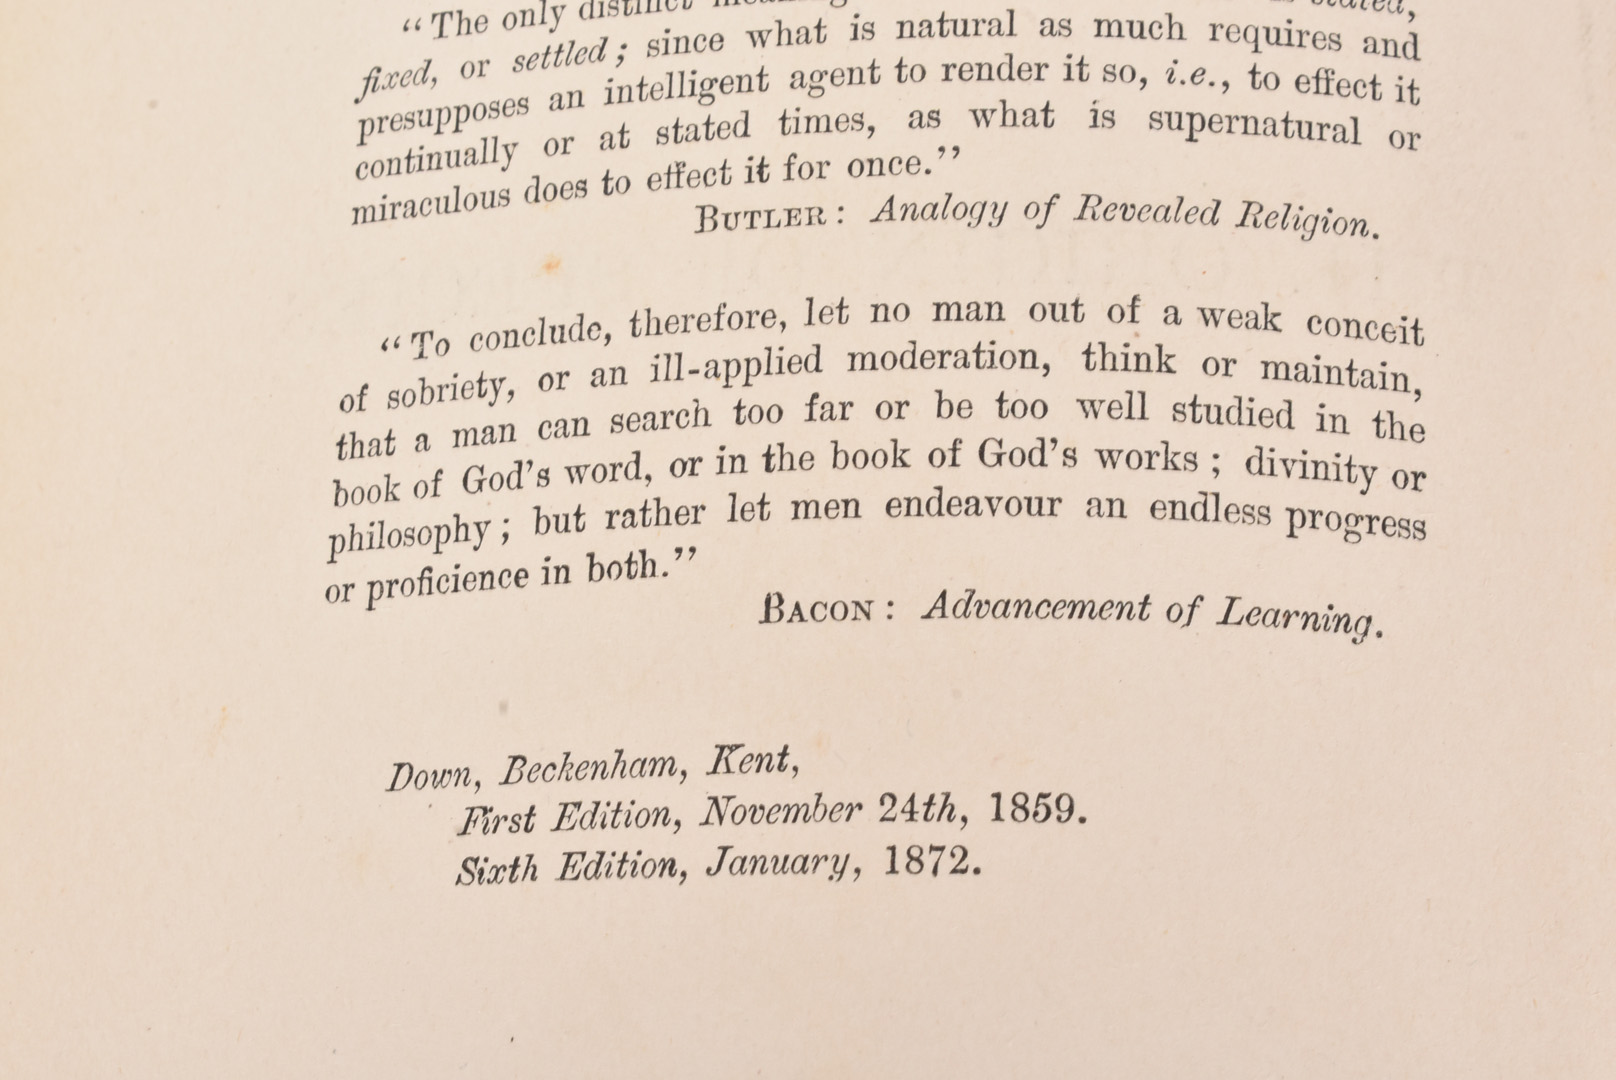 Charles Darwin, The Origin of Species, by Means of Natural Selection, or the Preservation of - Image 3 of 5